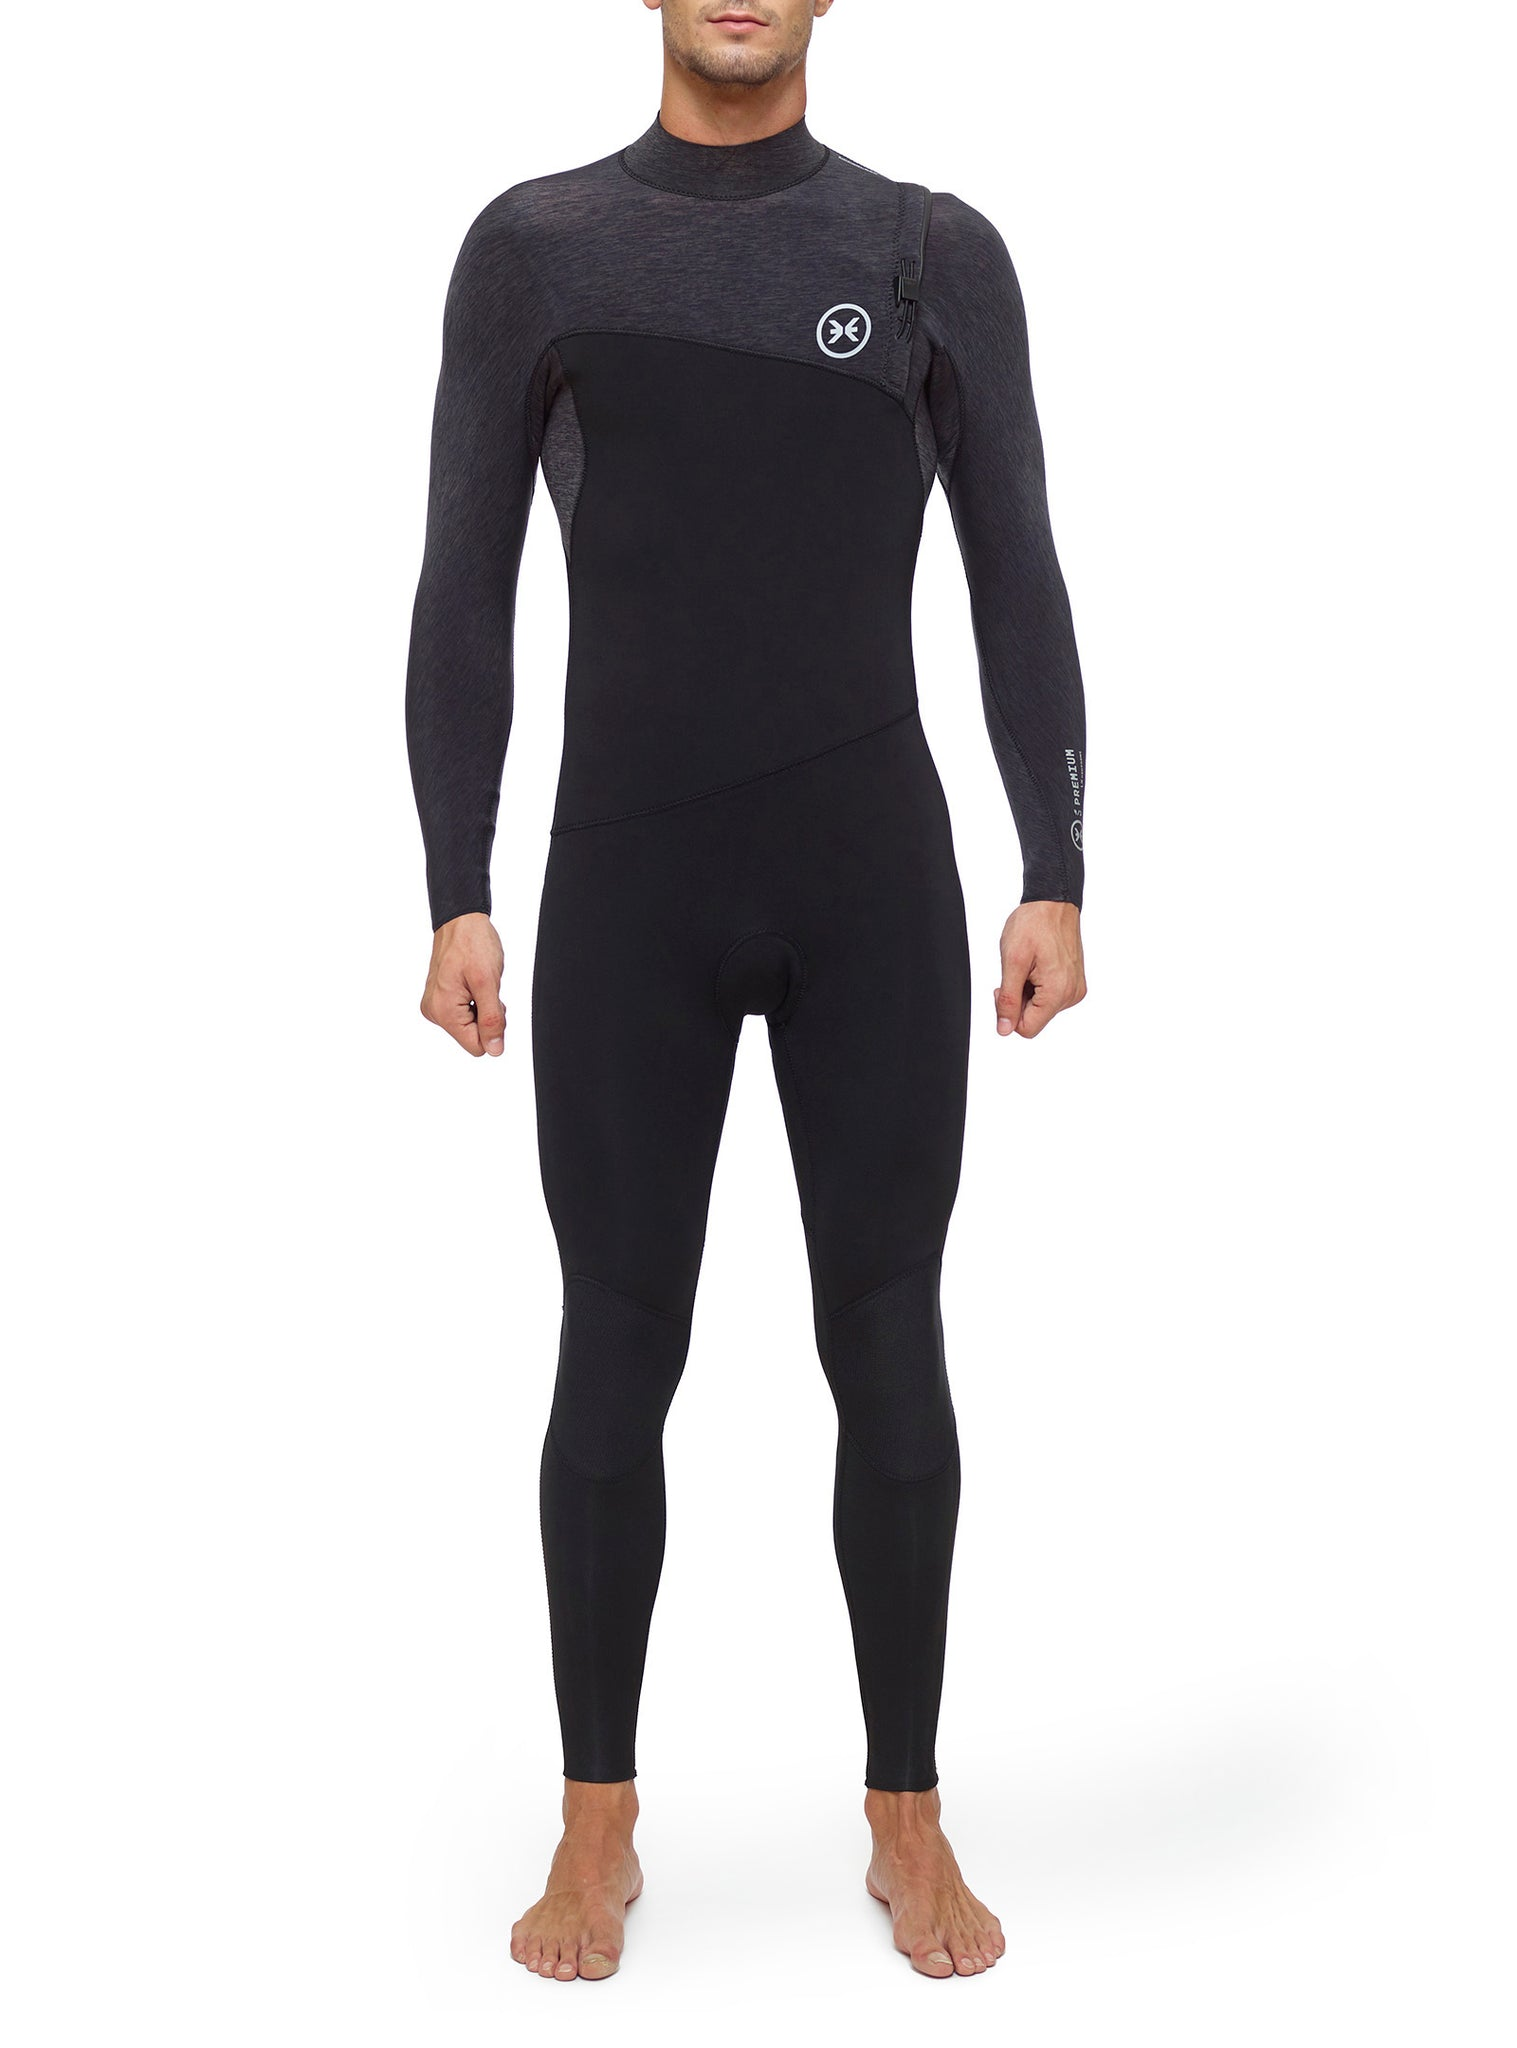 Wetsuit Man Premium 4/3 Zipperless Dark Grey